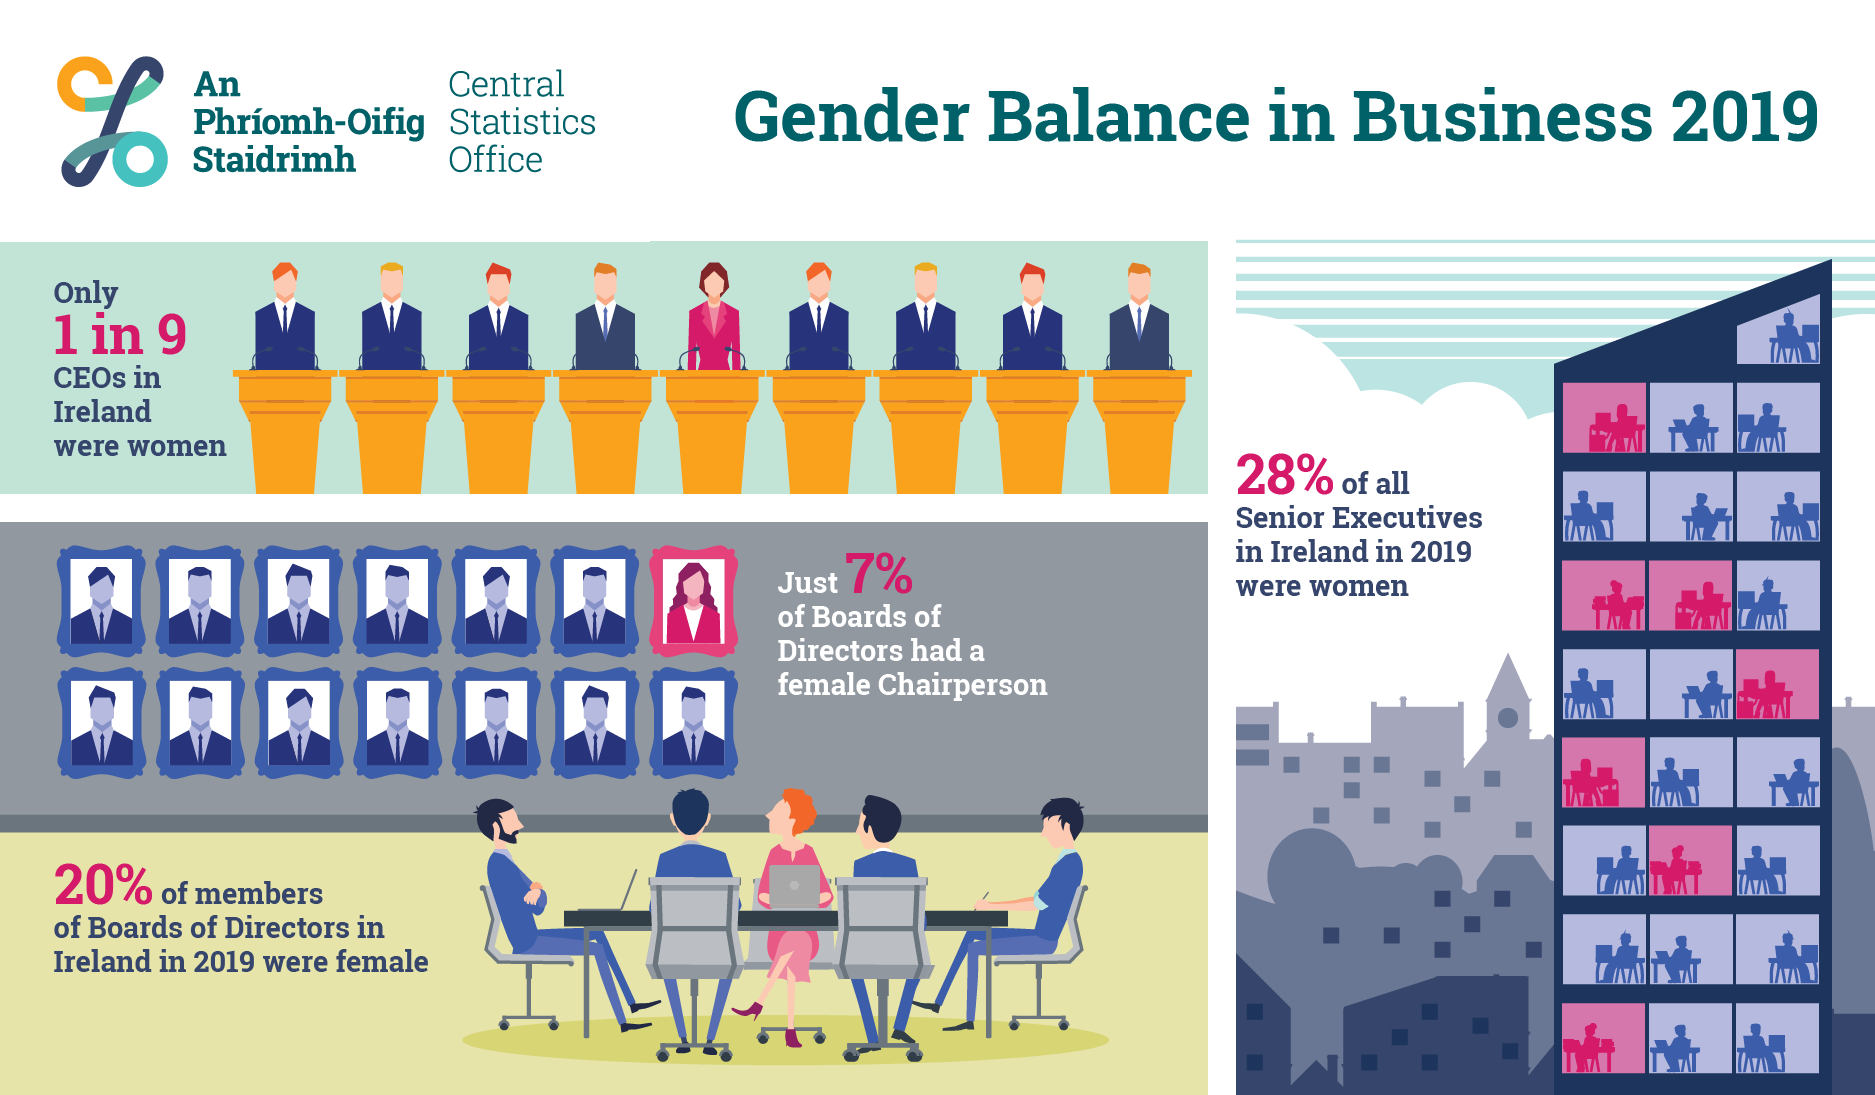 Gender Balance in Business 2019Infographic image